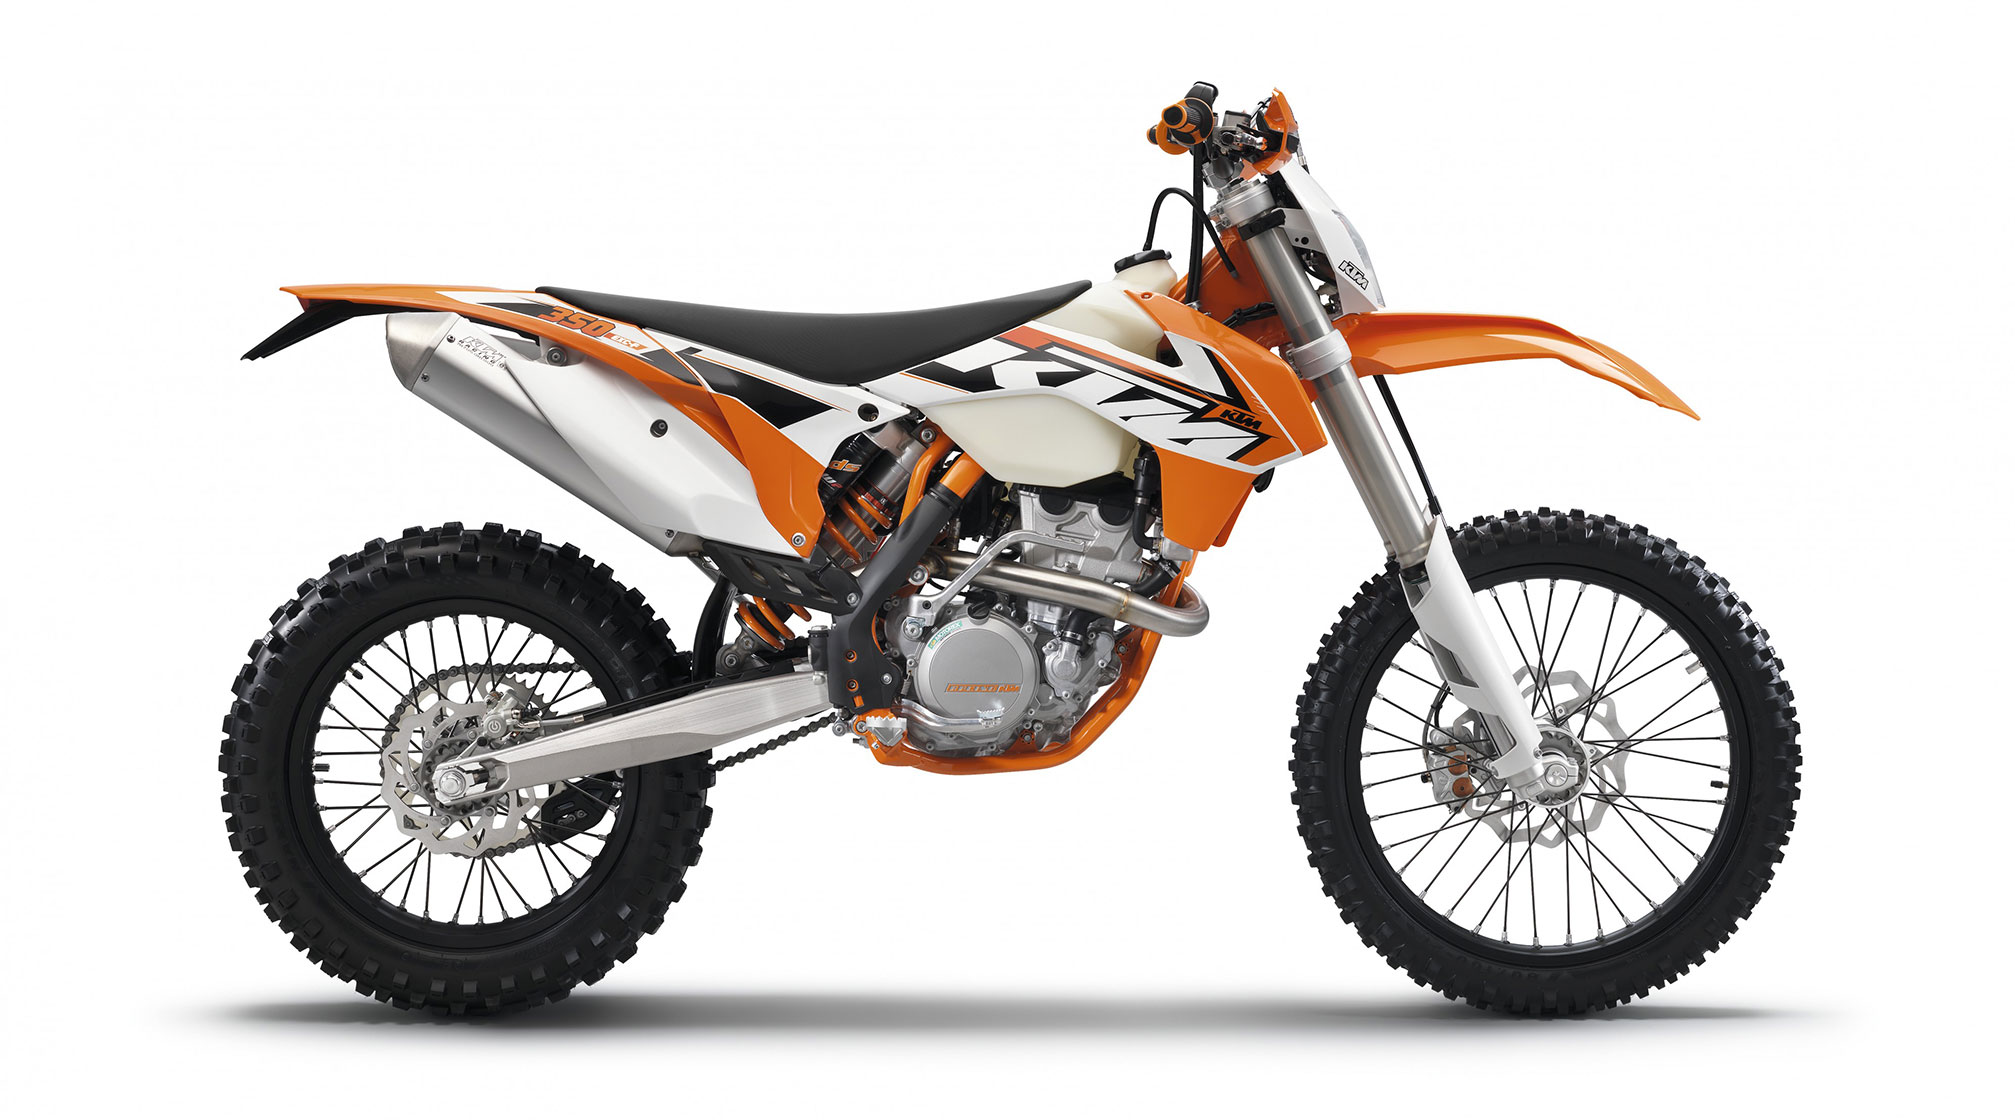 2016 ktm 350 exc f review